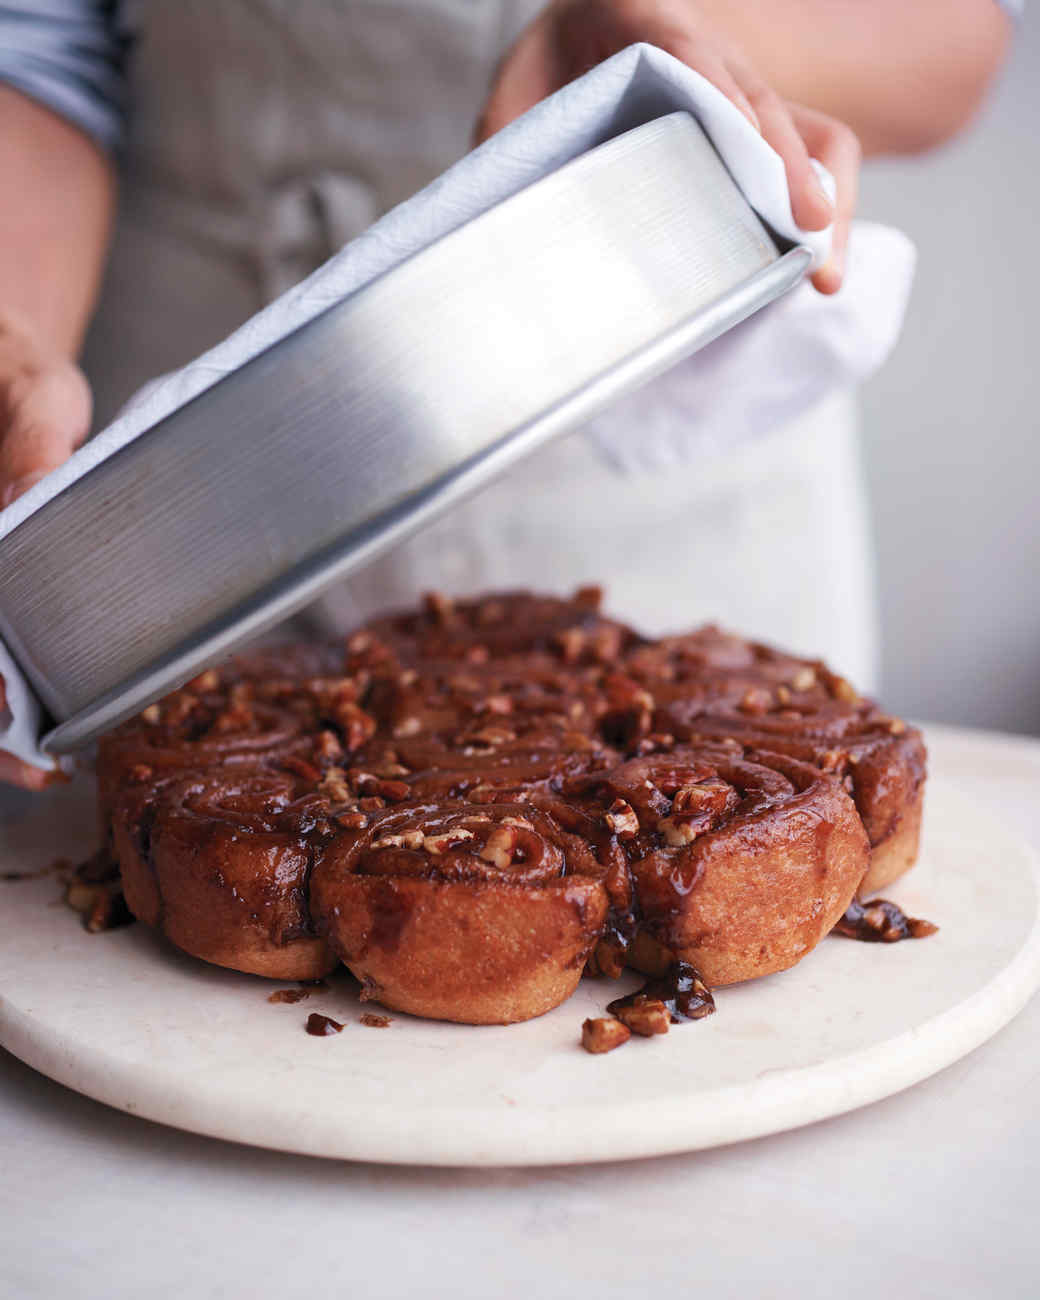 sticky-buns-675-md110606.jpg